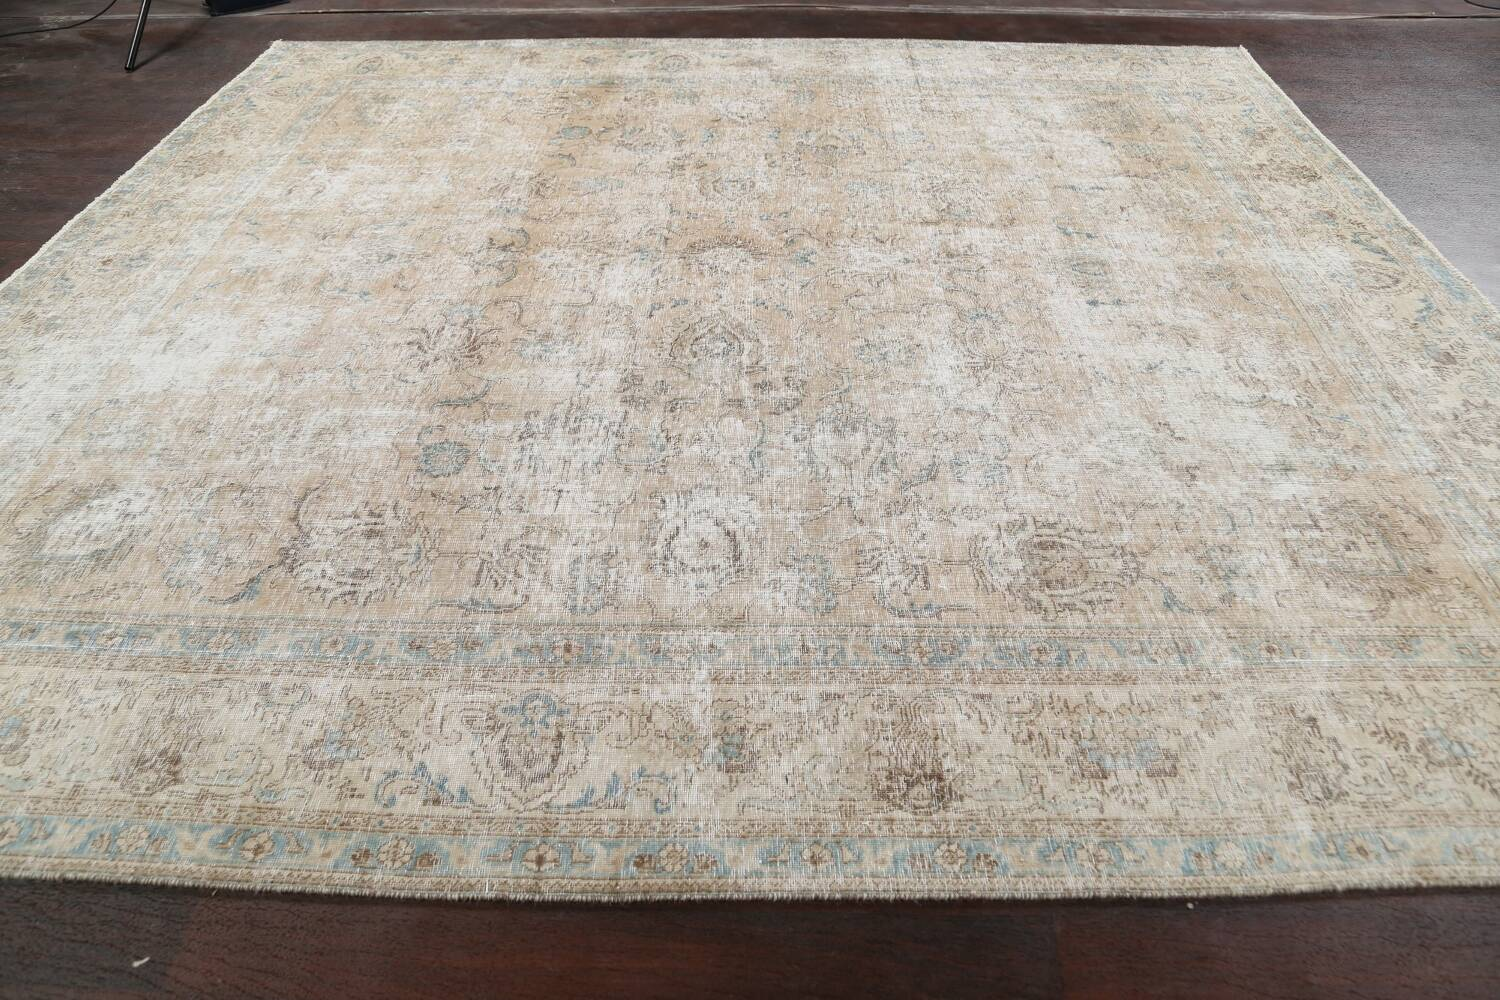 Muted Floral Tabriz Persian Area Rug 10x11 image 14